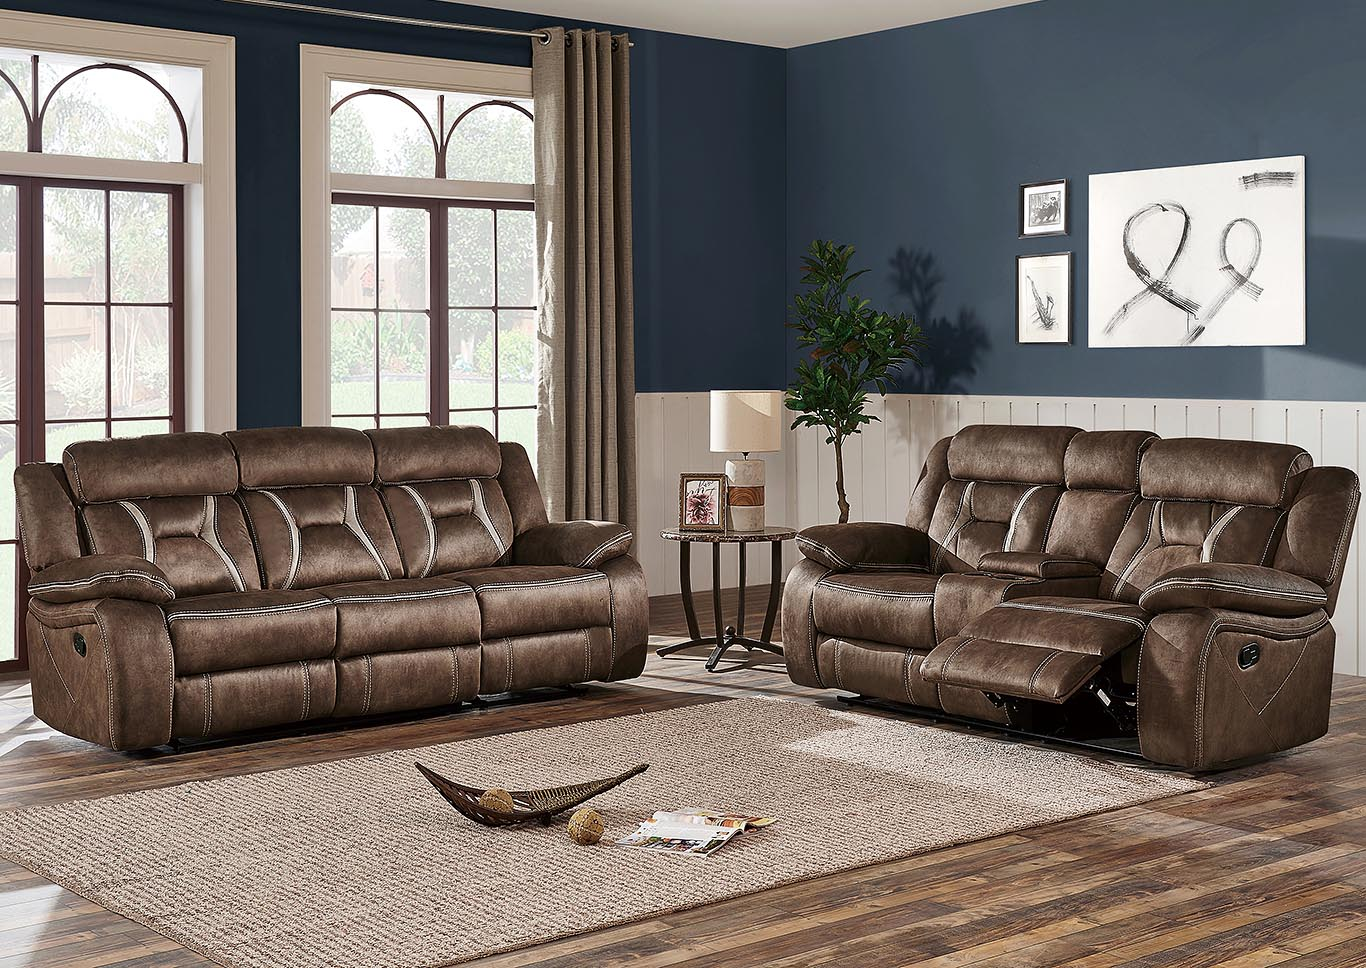 Robinson Furniture Detroit Sultry Dark Brown Reclining Sofa